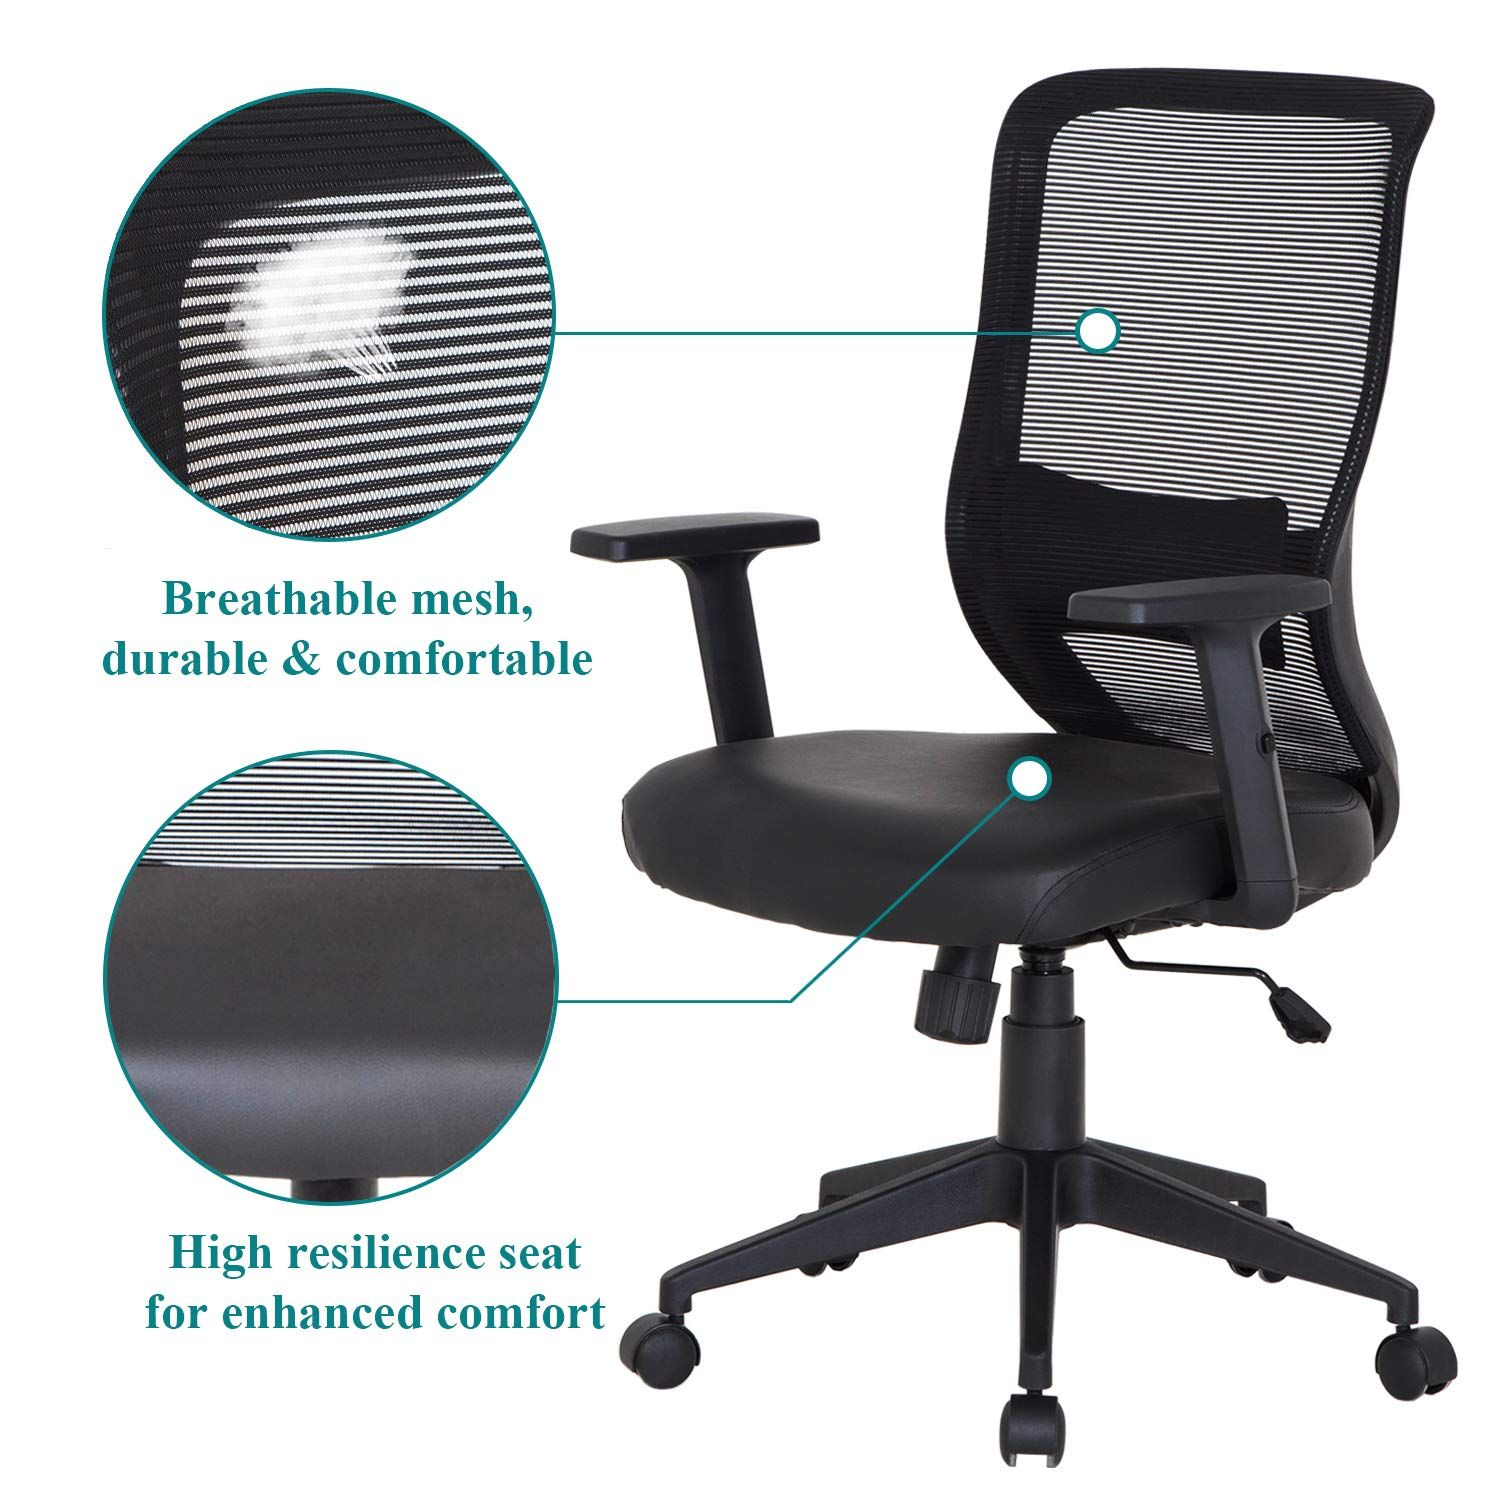 Vecelo Pu Cushion Home Office Chair For For Task Desk Work Black You Can Find Out More Details At The In 2020 Home Office Chairs Home Office Furniture Office Chair